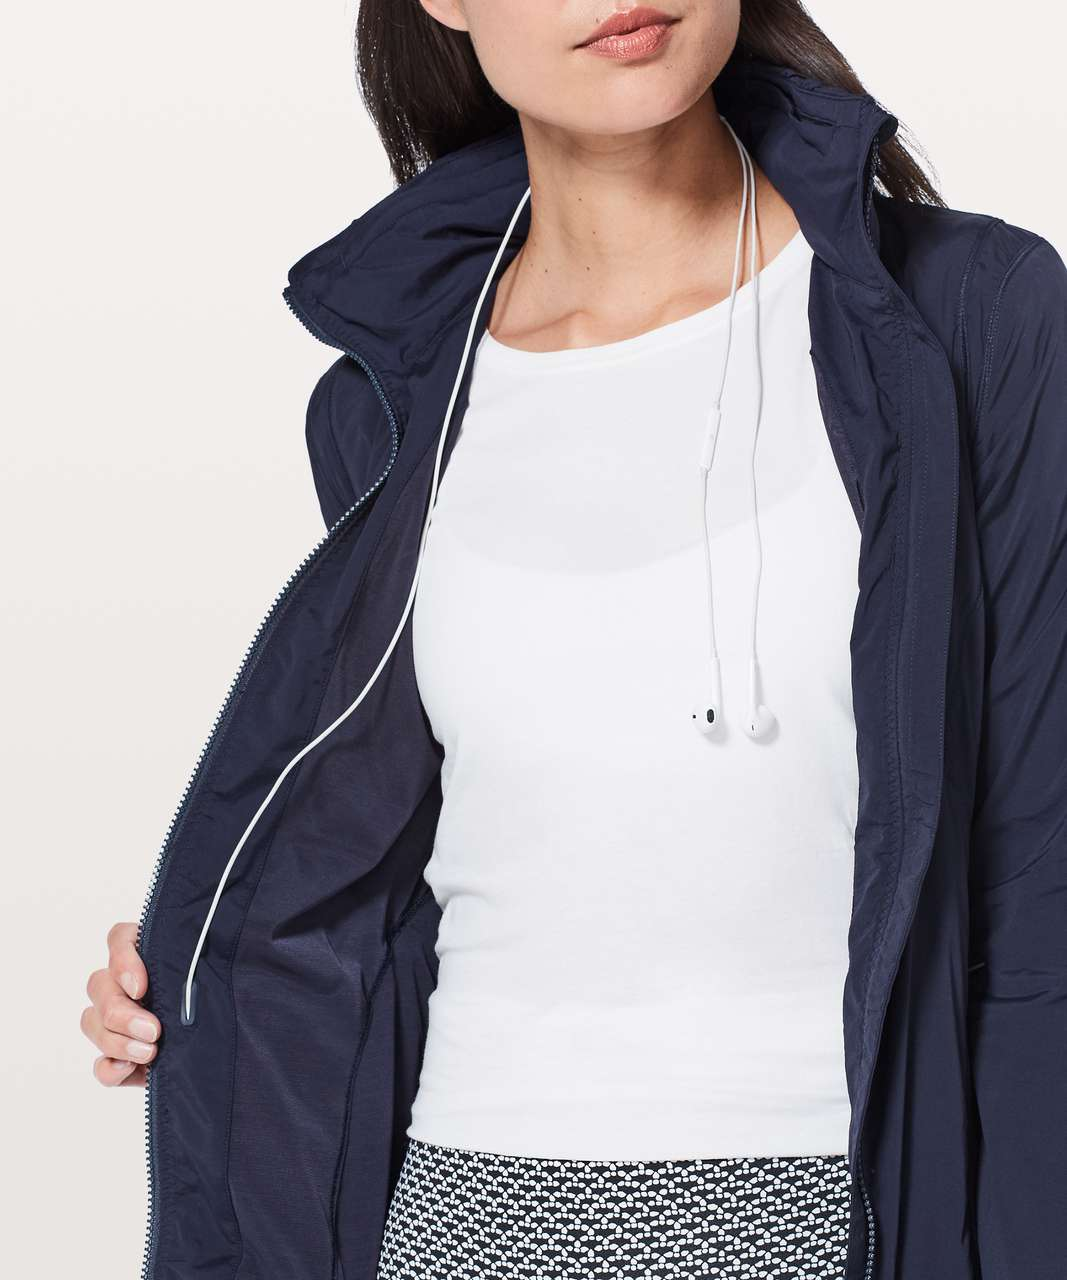 Lululemon Such A Cinch Jacket - Midnight Navy